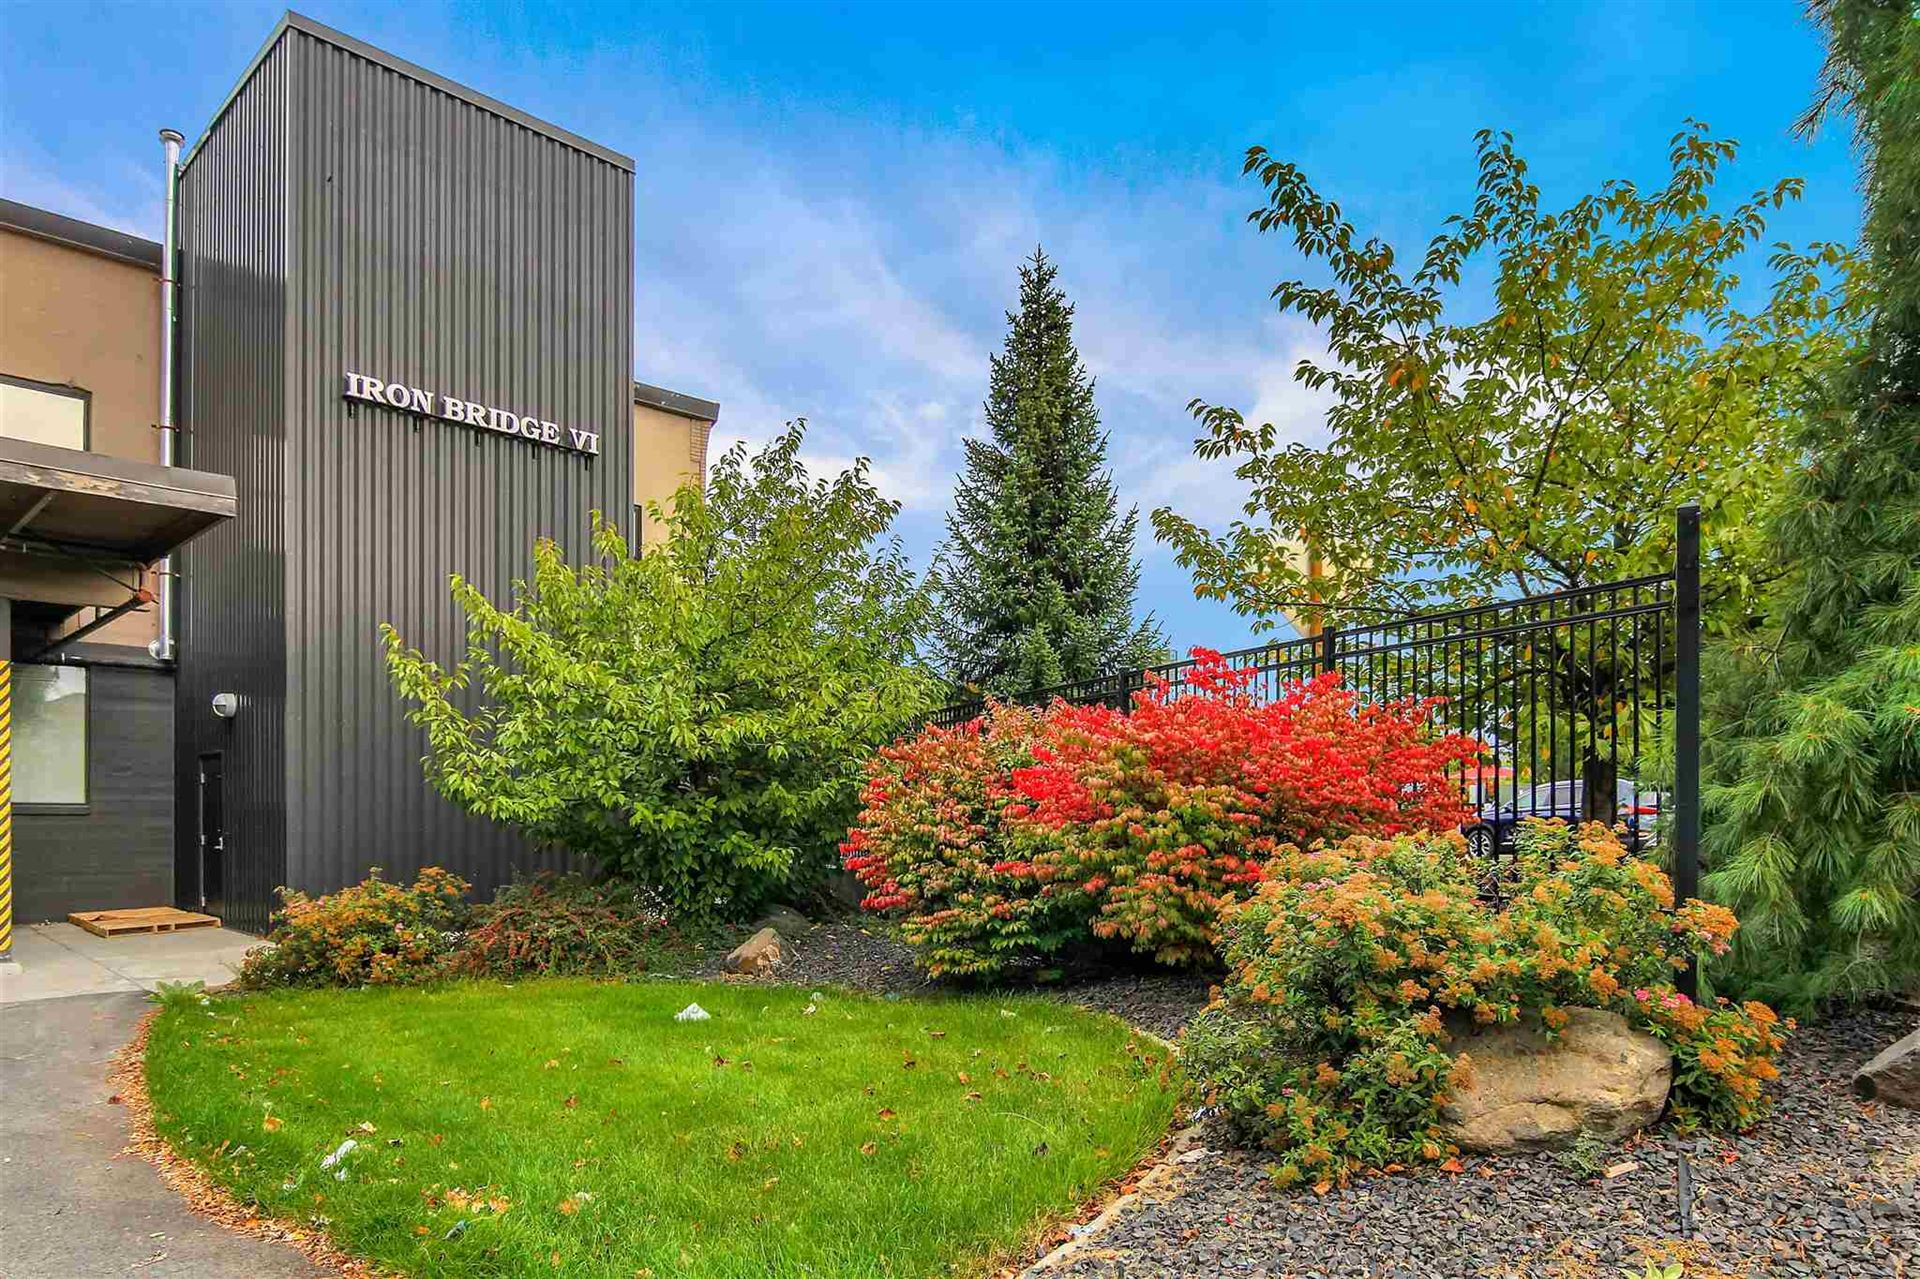 629 N Iron Ct #108, Spokane, WA 99202 - #: 202114022